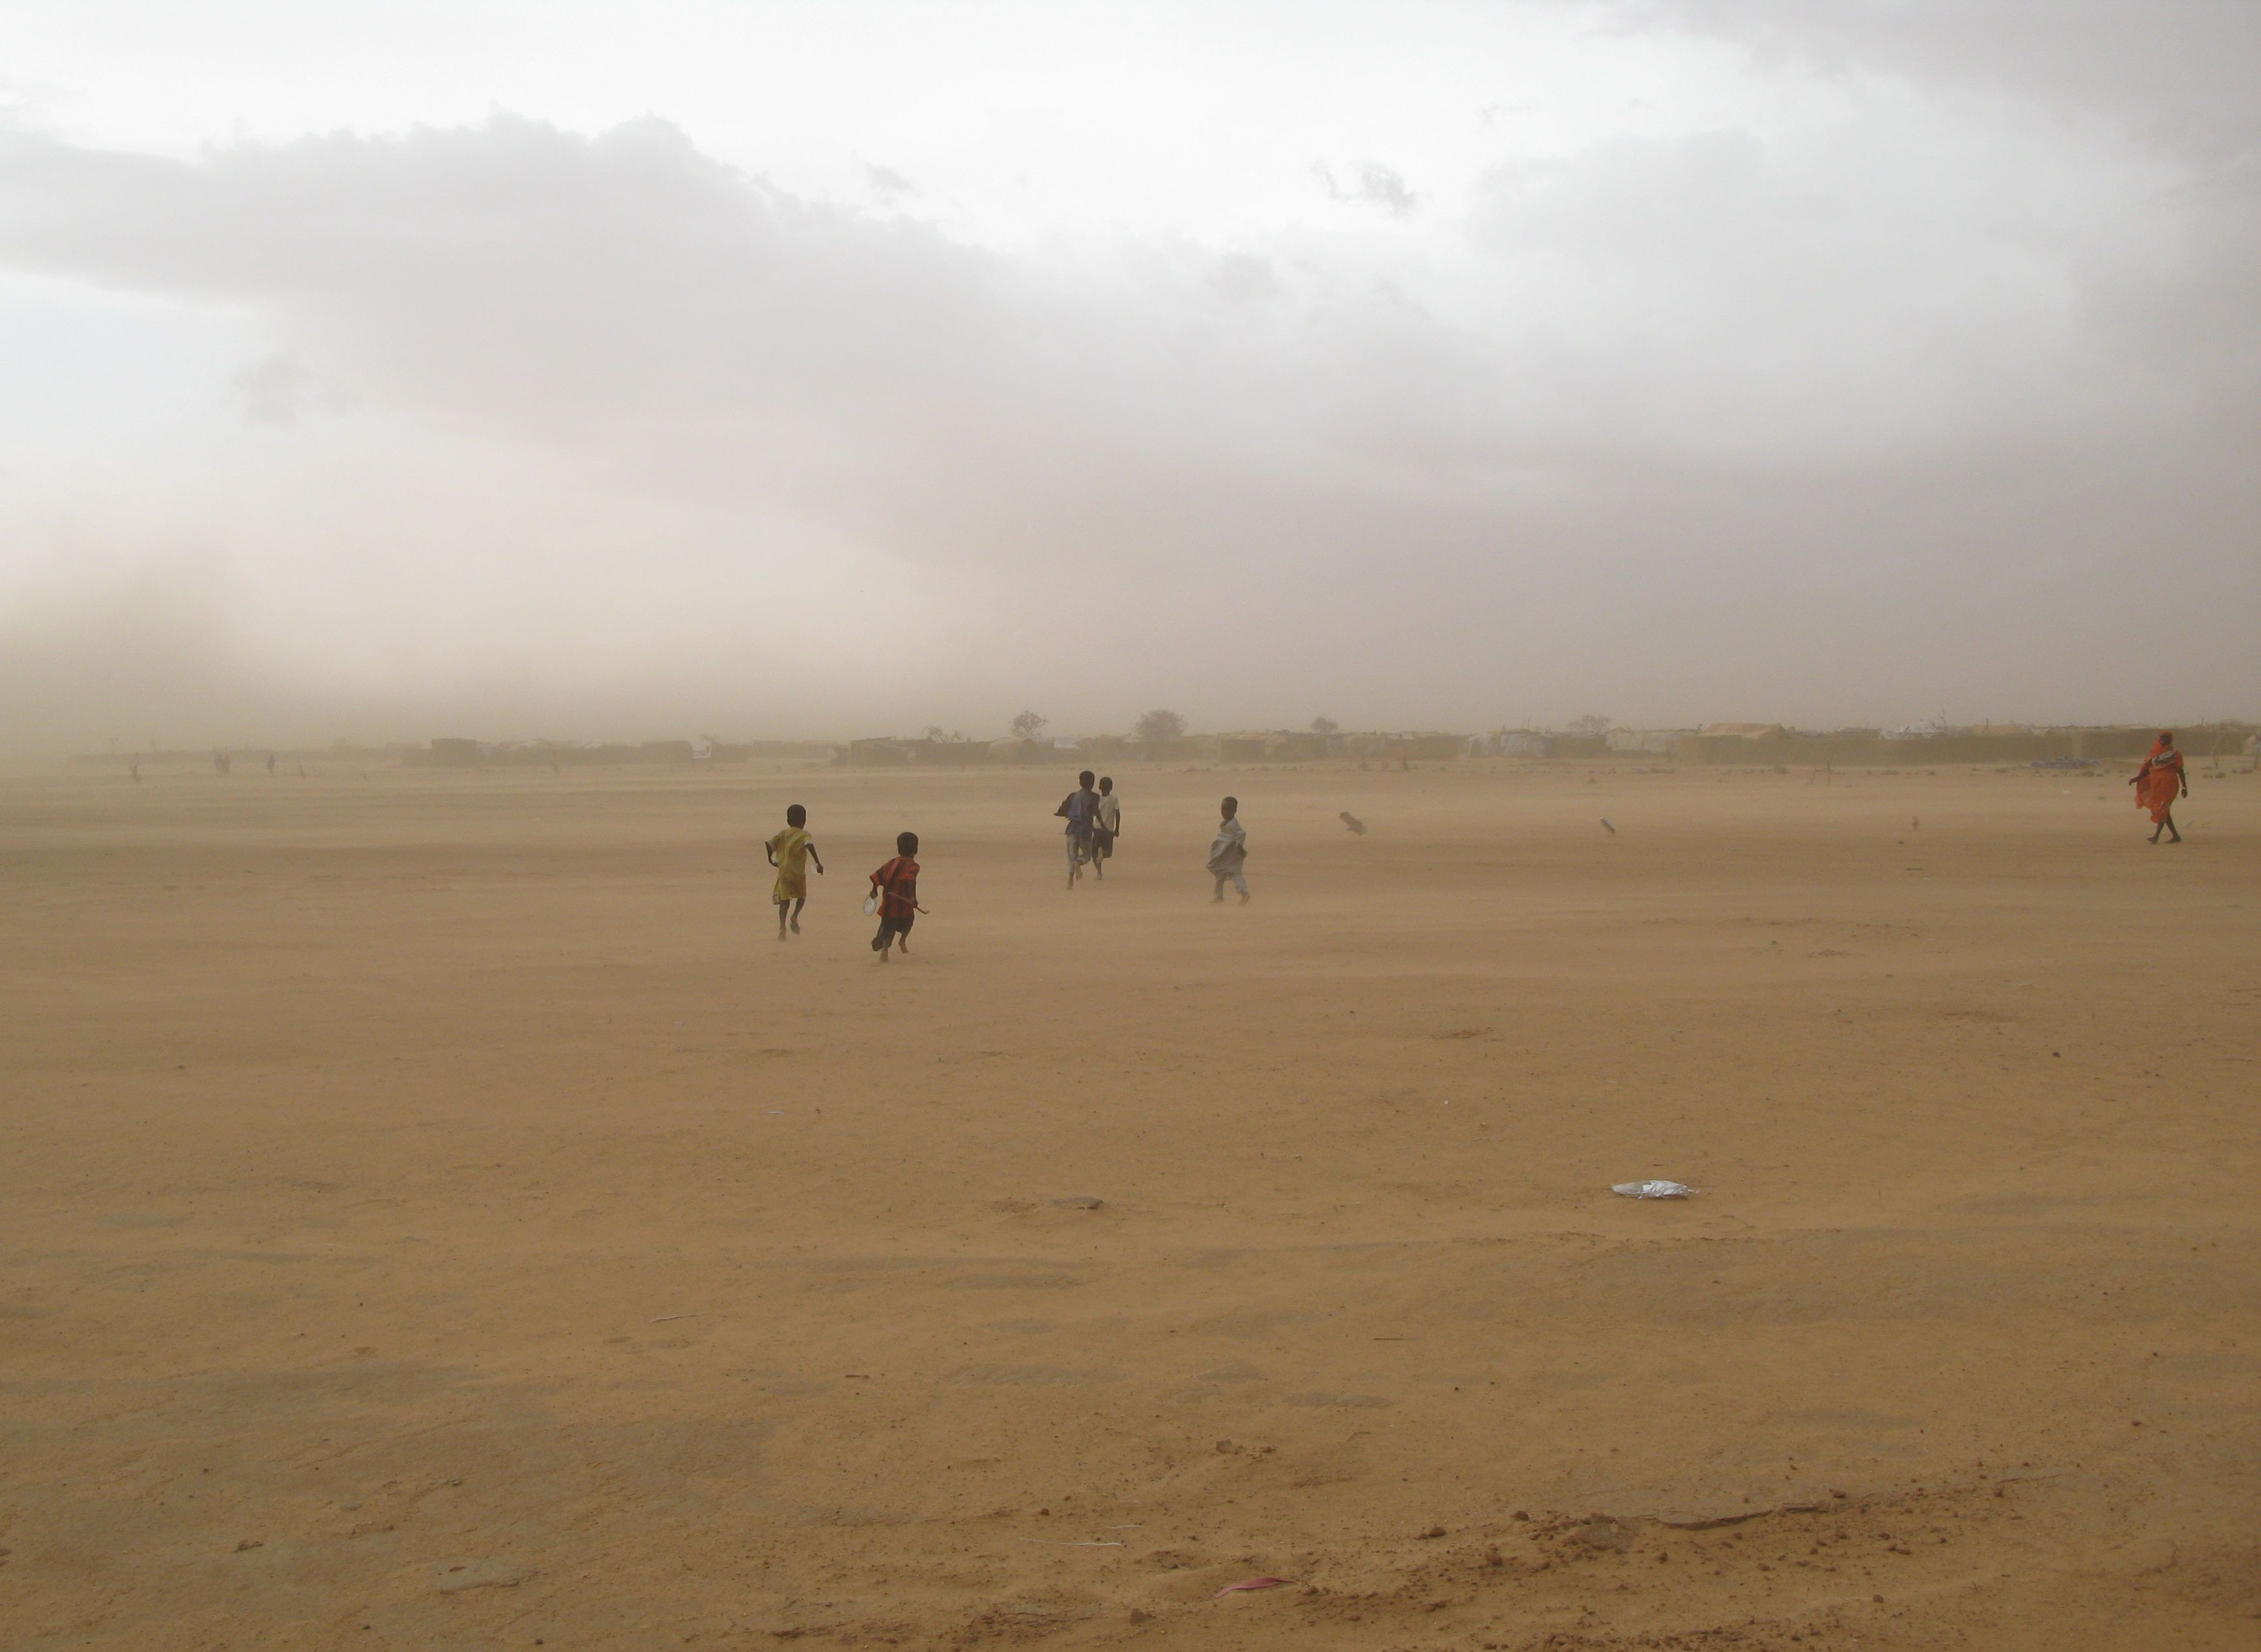 Boys fleeing violence along the border of Darfur and Chad